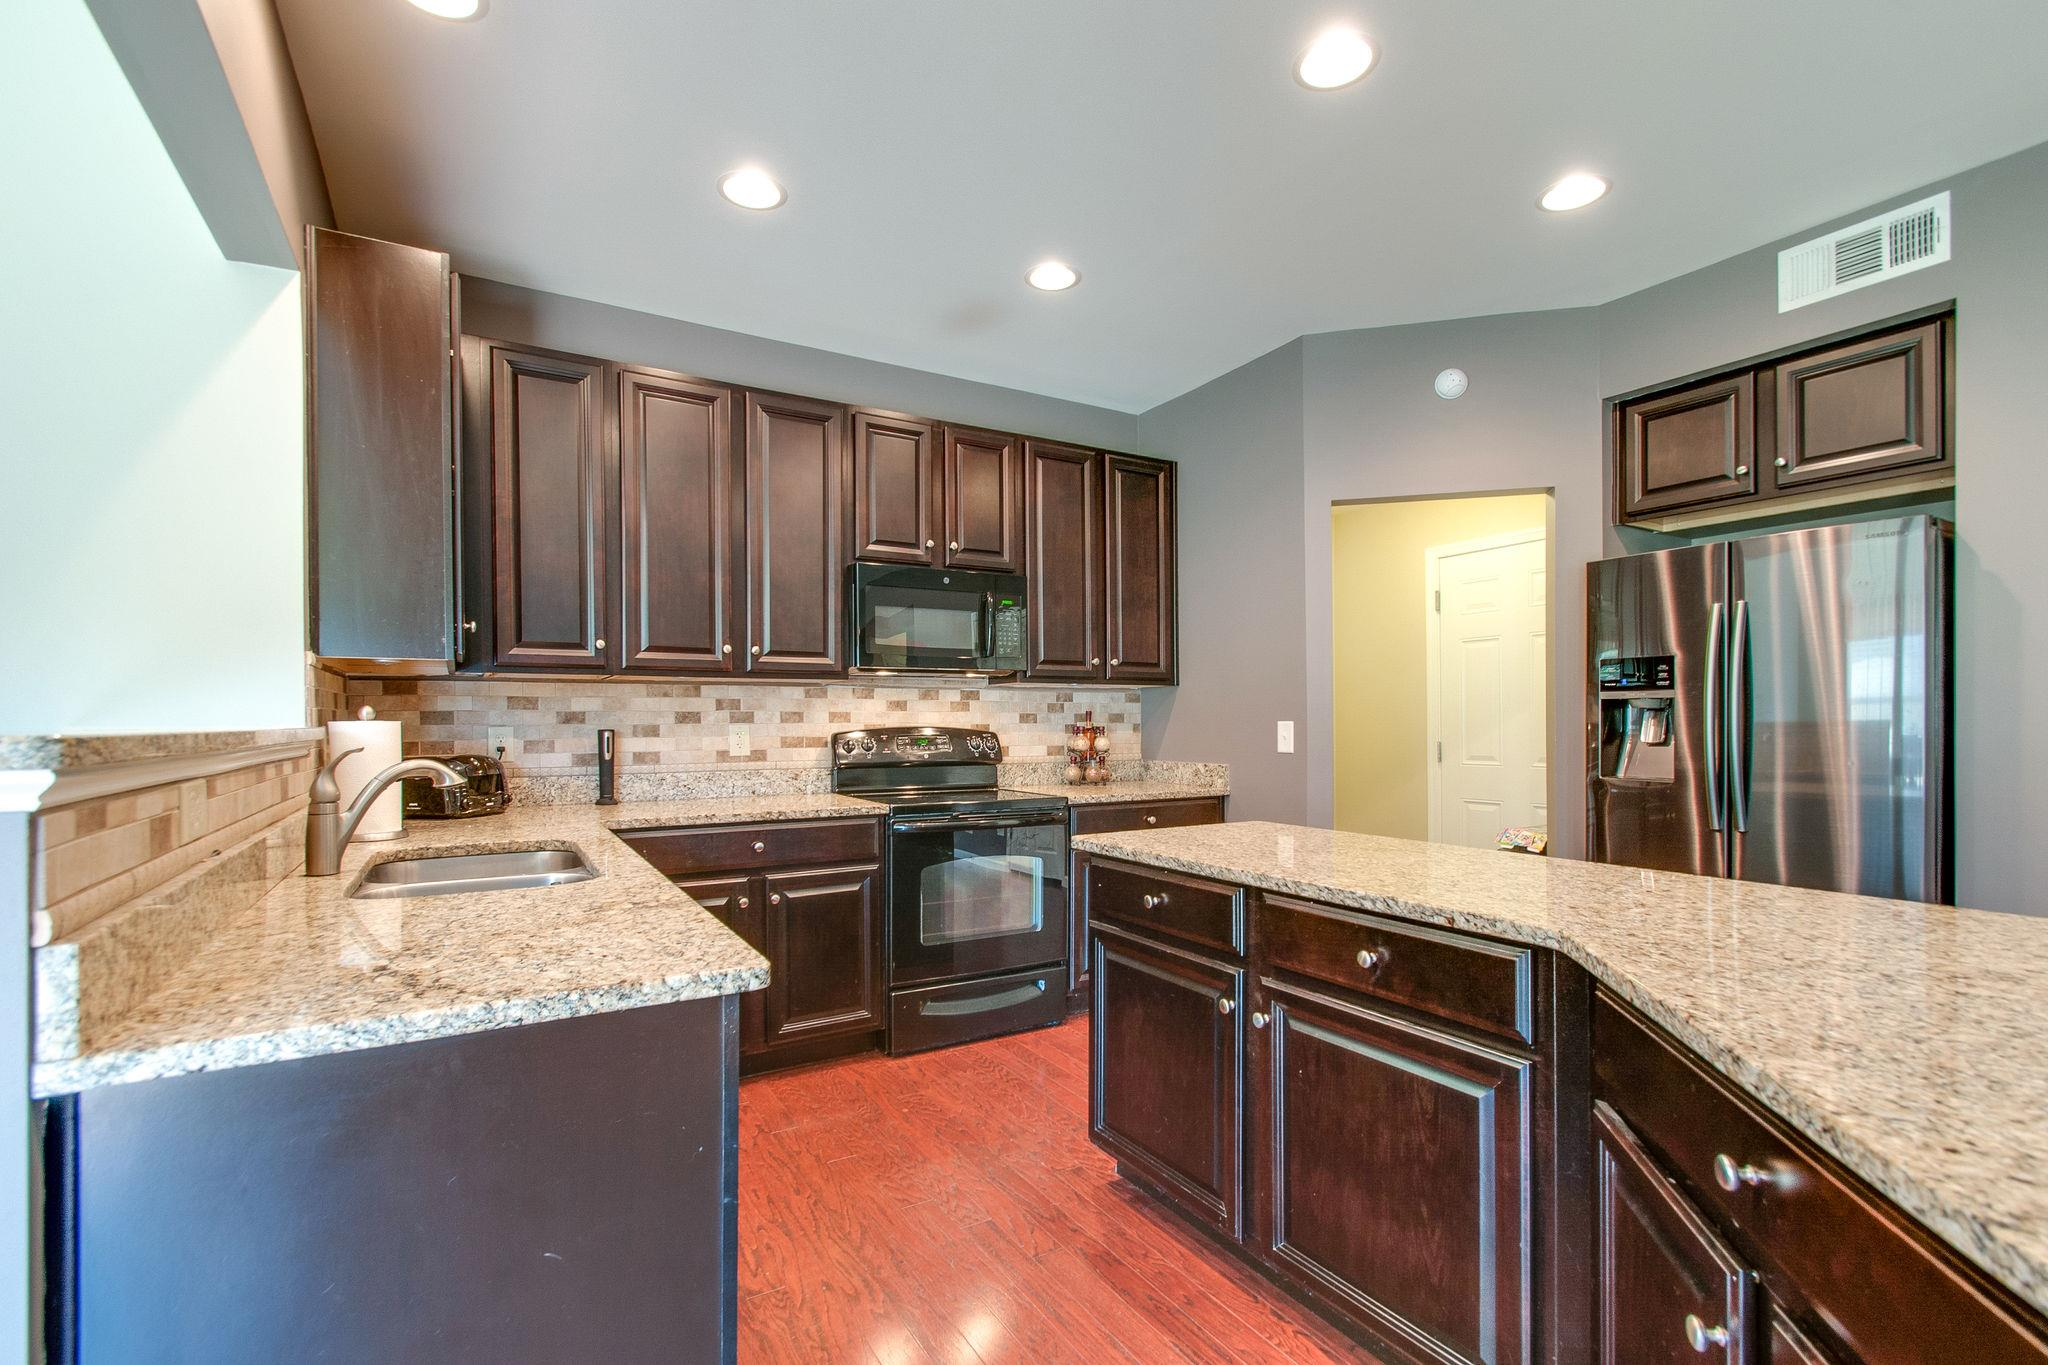 716 Gloucester Ln, Bellevue in Davidson County County, TN 37221 Home for Sale